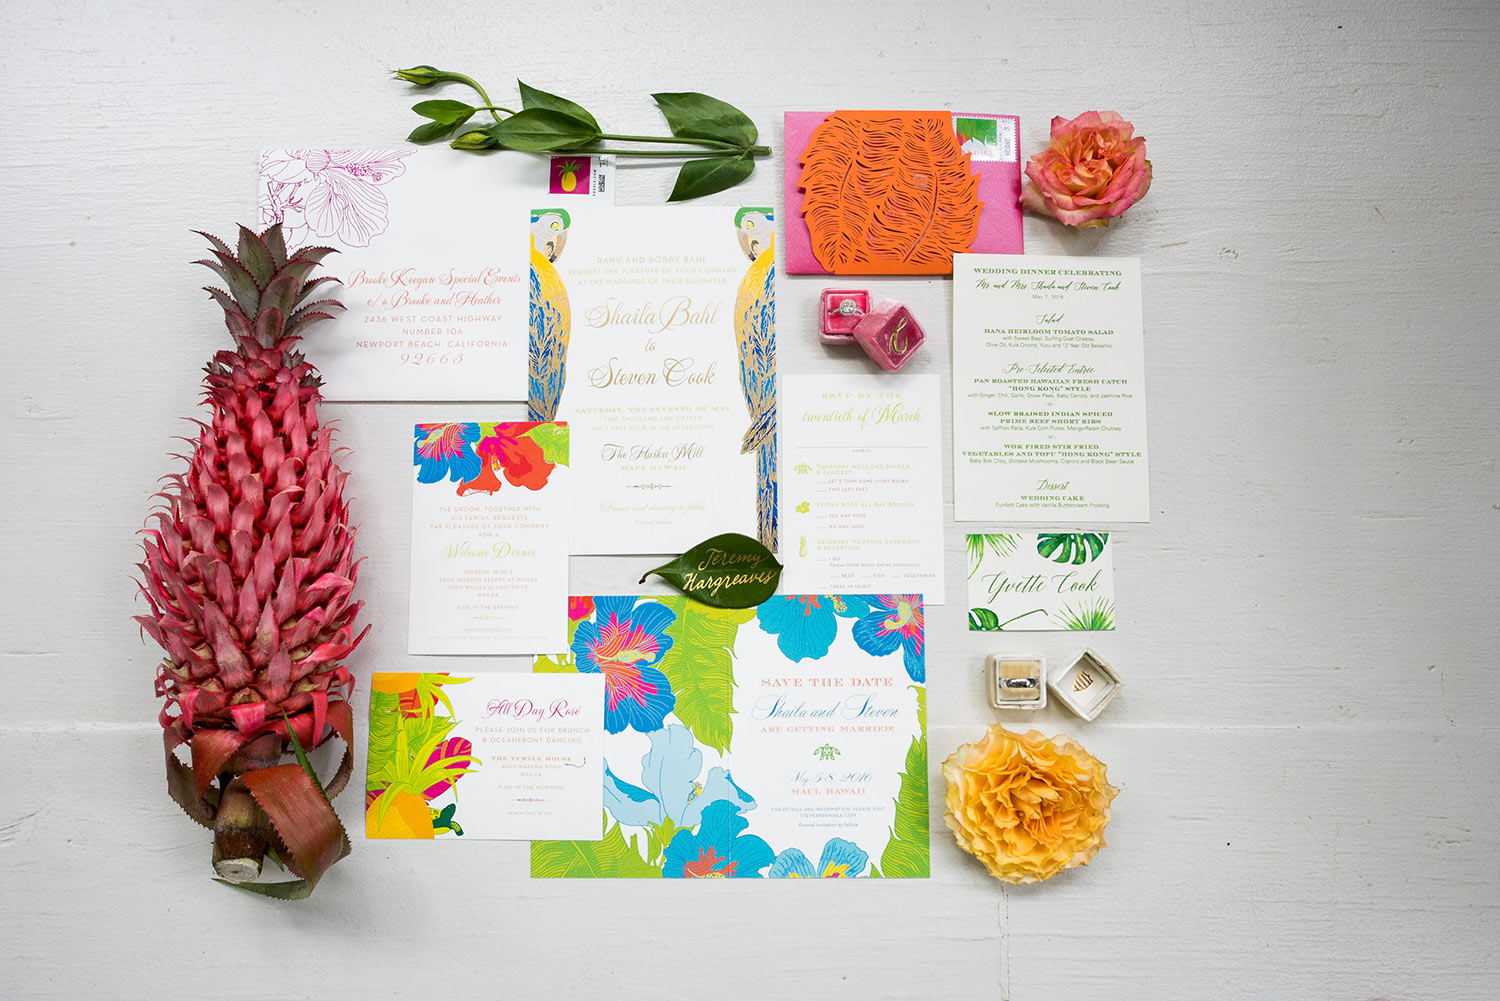 Tropical invitation suite with colorful flowers photographed by Callaway Gable - Los Angeles